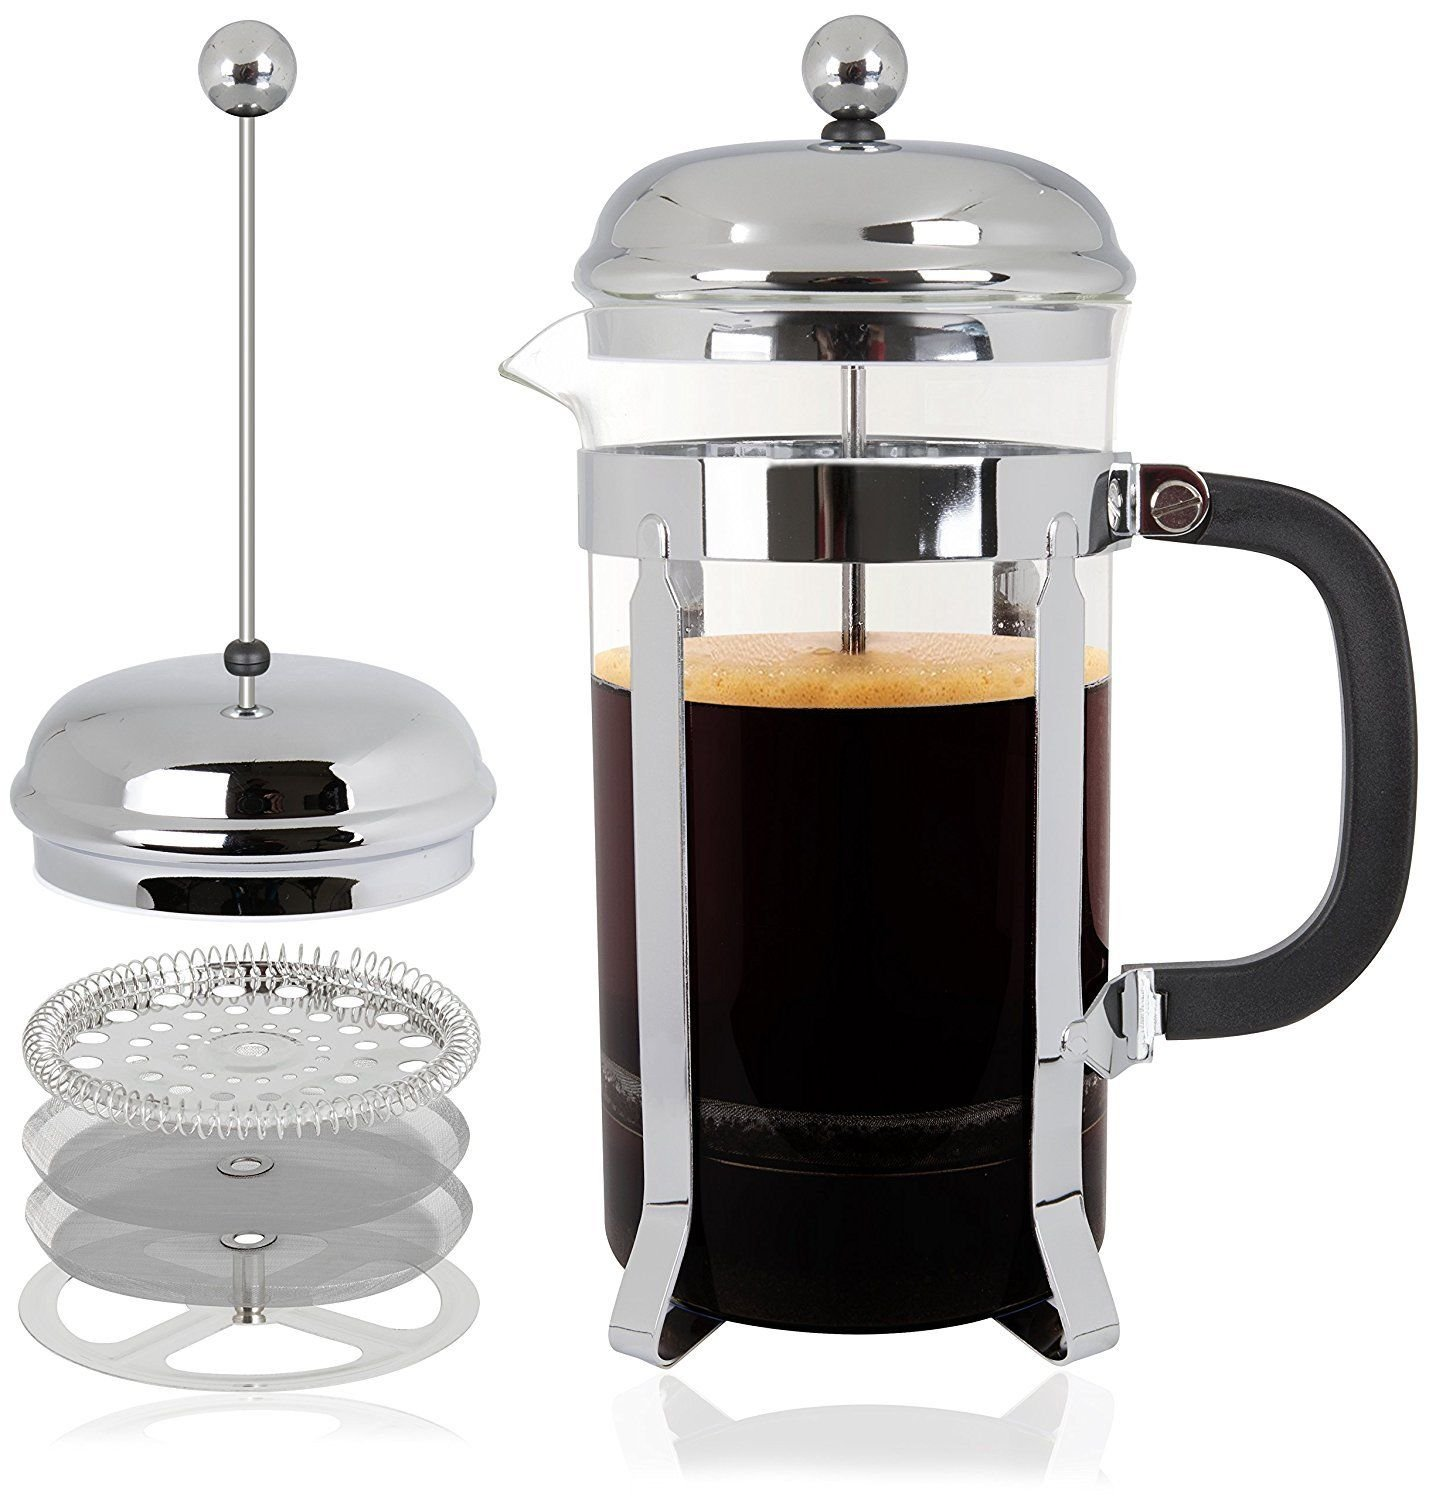 Mr Kitchen All-in-1 French Press Coffee Maker, Coffee Press Tea Maker w 32 Oz 4 Cup Carafe-Perfect Cup of Coffee Every Time-QUALITY Stainless Steel Coffee Maker Structure